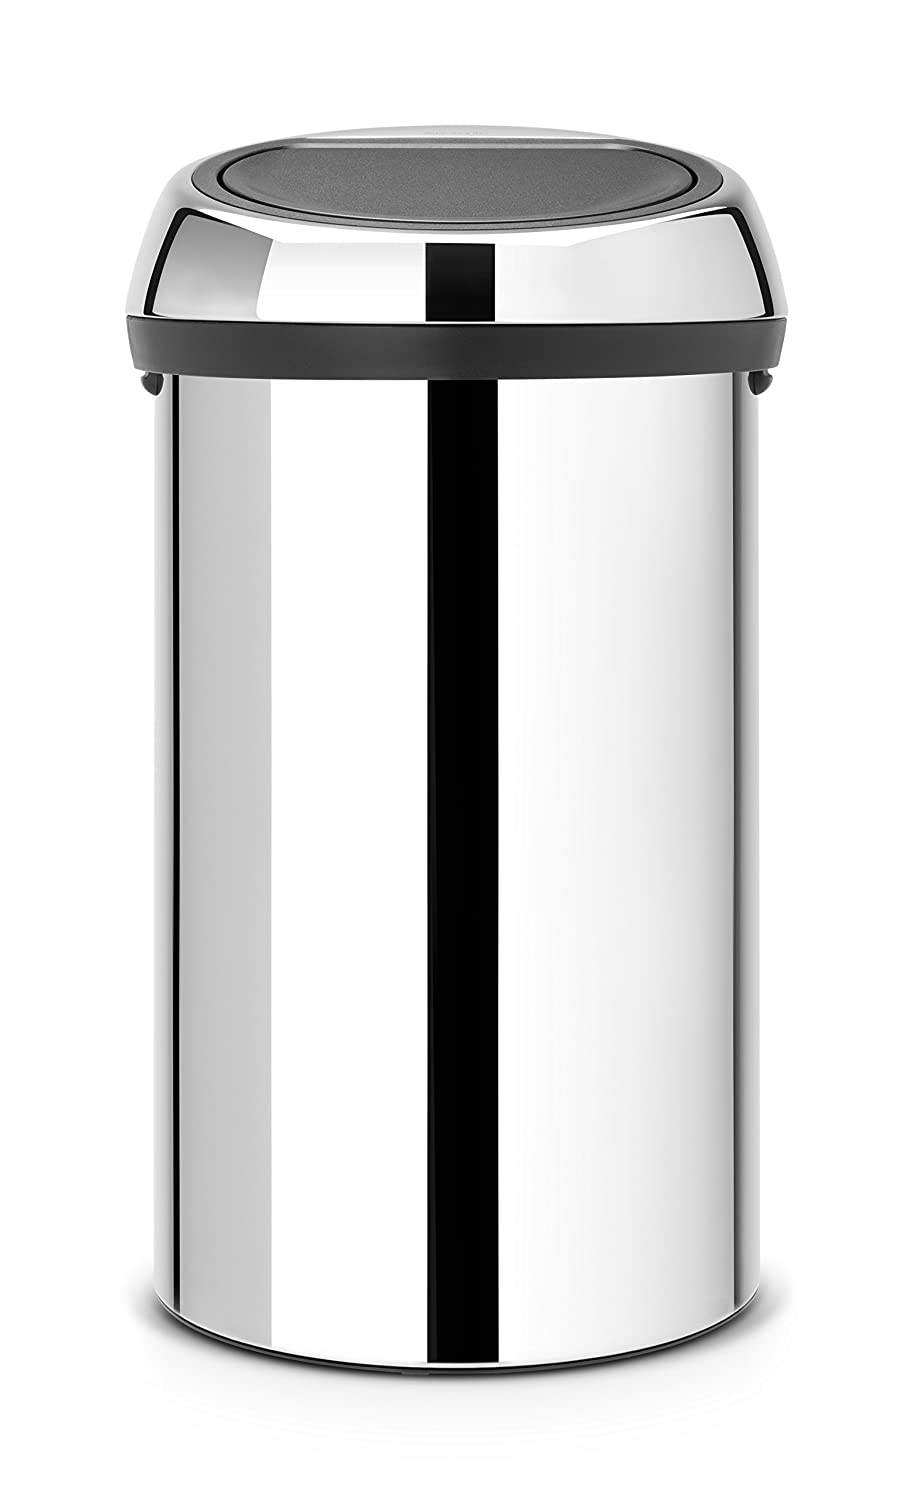 Brabantia 402609 Touch Trash Can, 16 gallon/60 L, Brilliant Steel